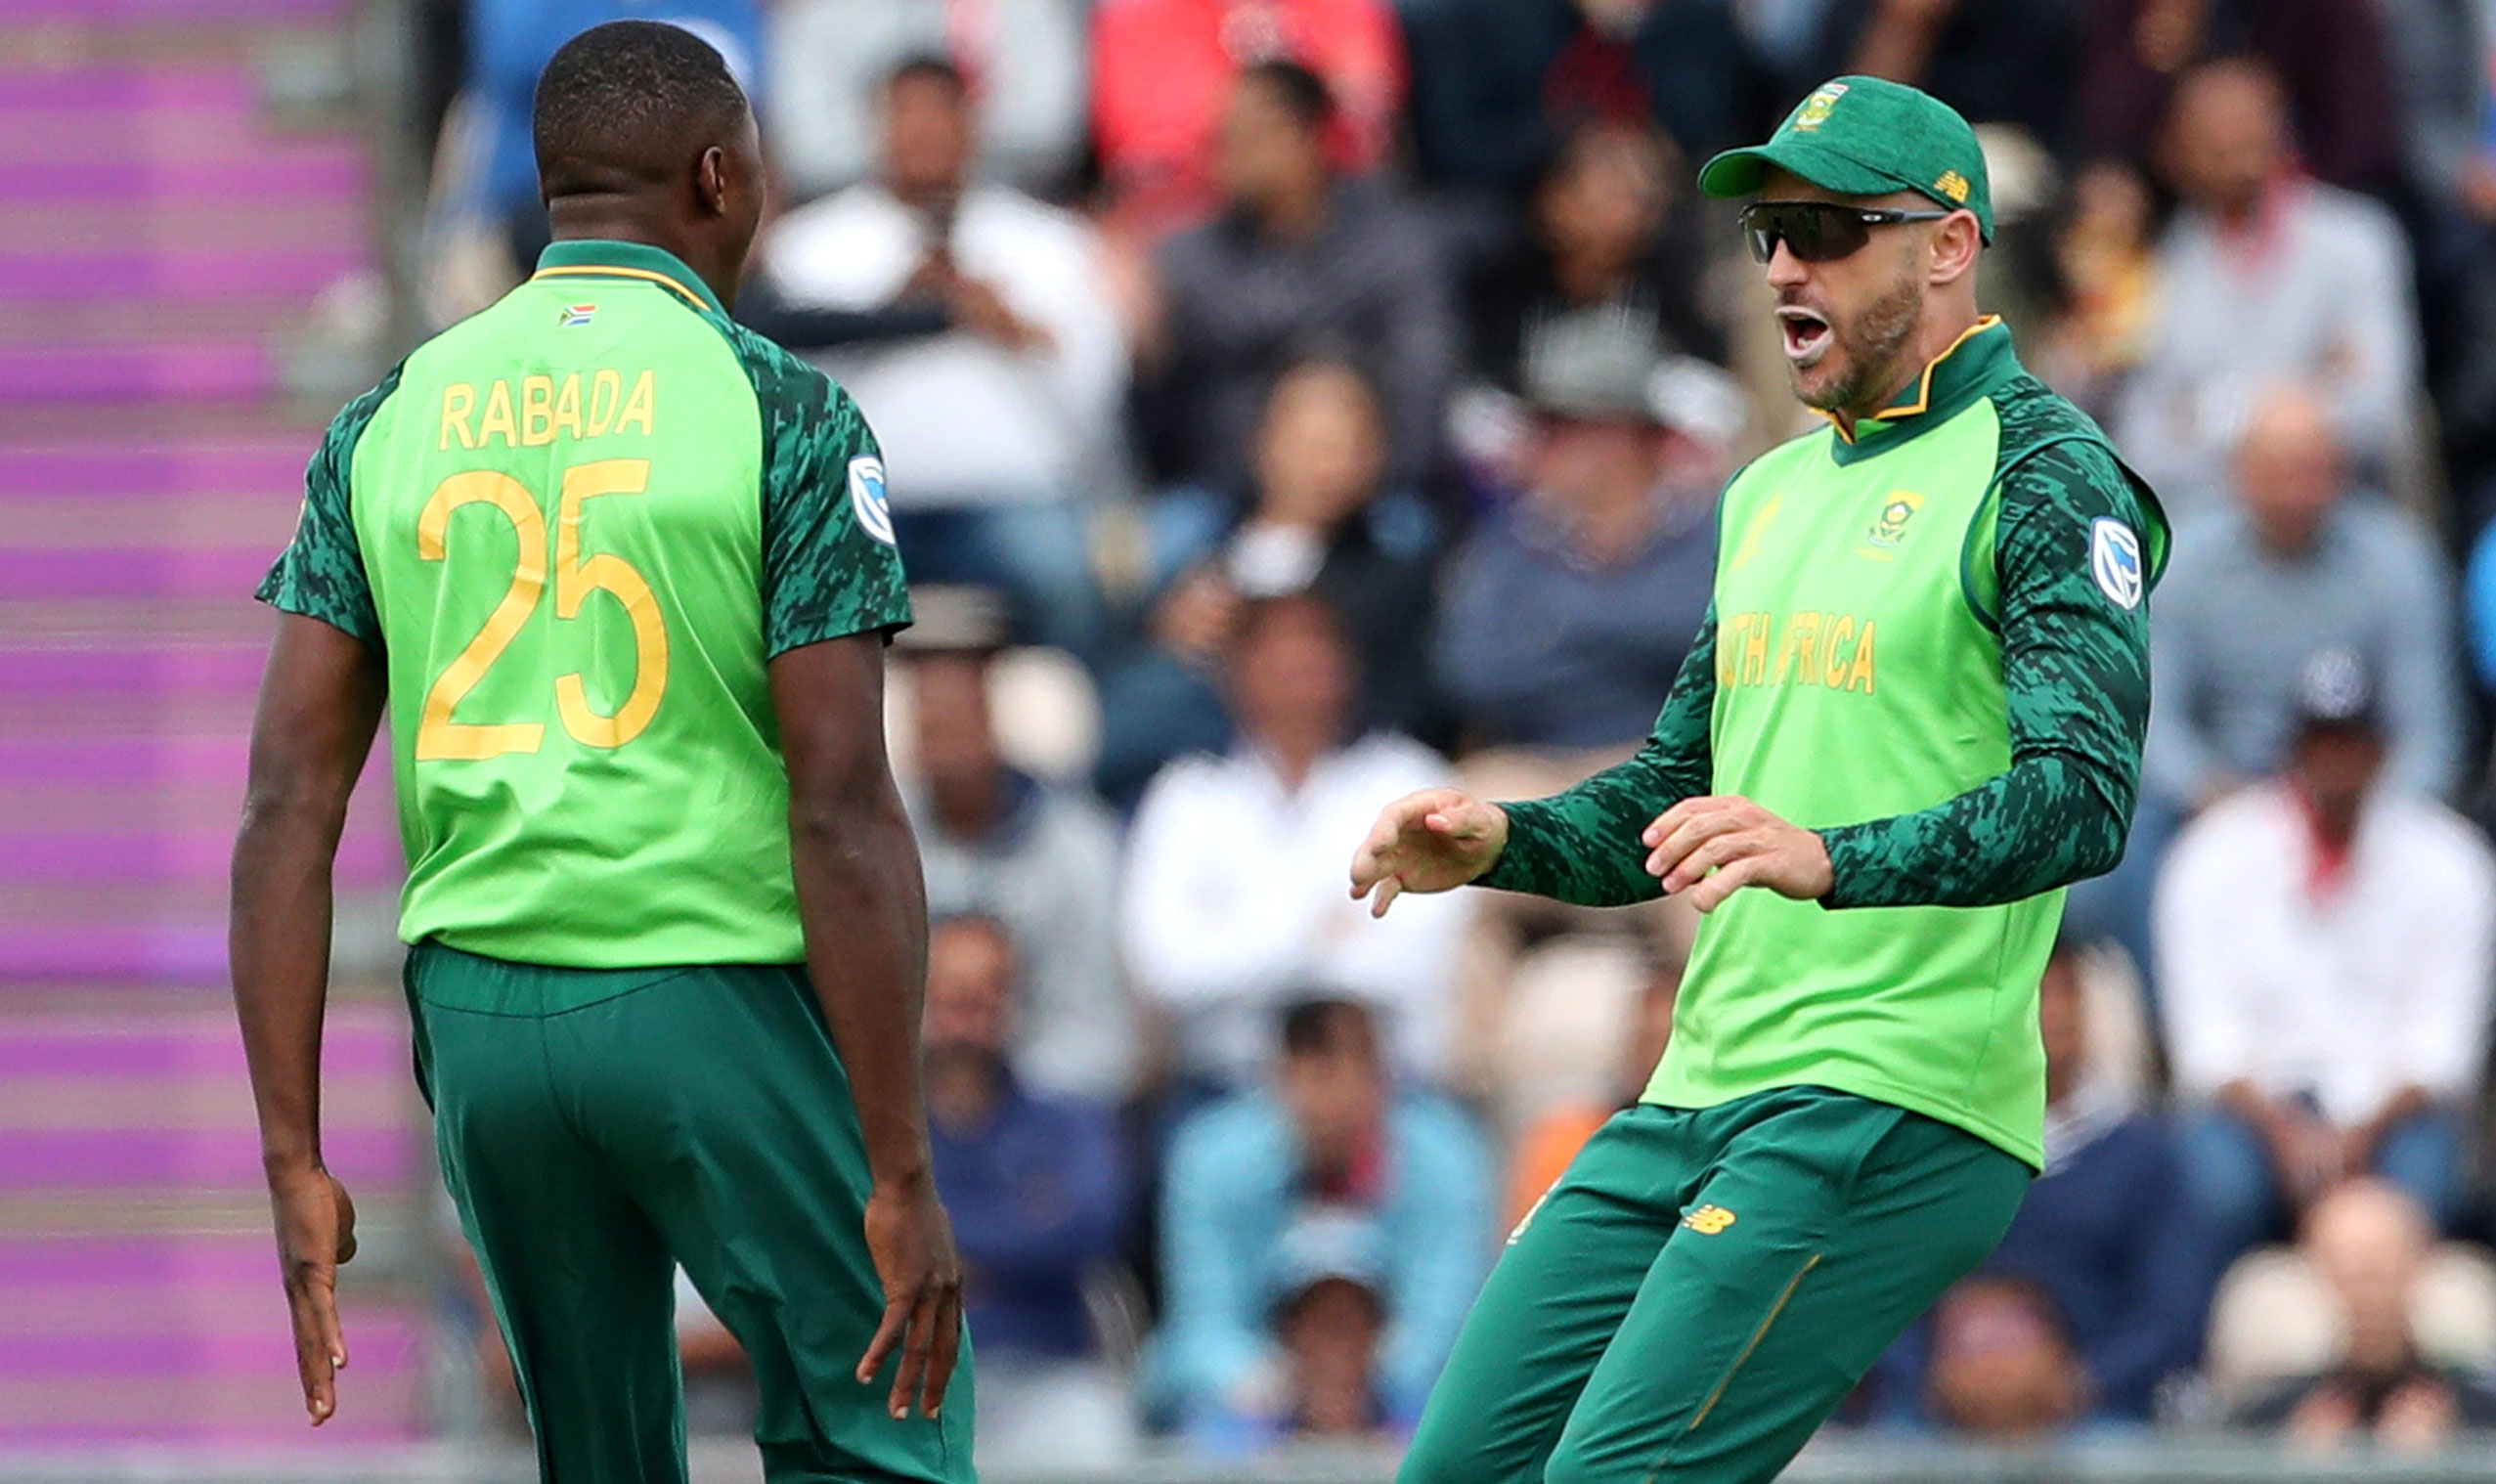 Kagiso Rabada (left) with Faf du Plessis during the ICC Cricket World Cup match between South Africa and India at the Hampshire Bowl in Southampton, England, on June 5, 2019.